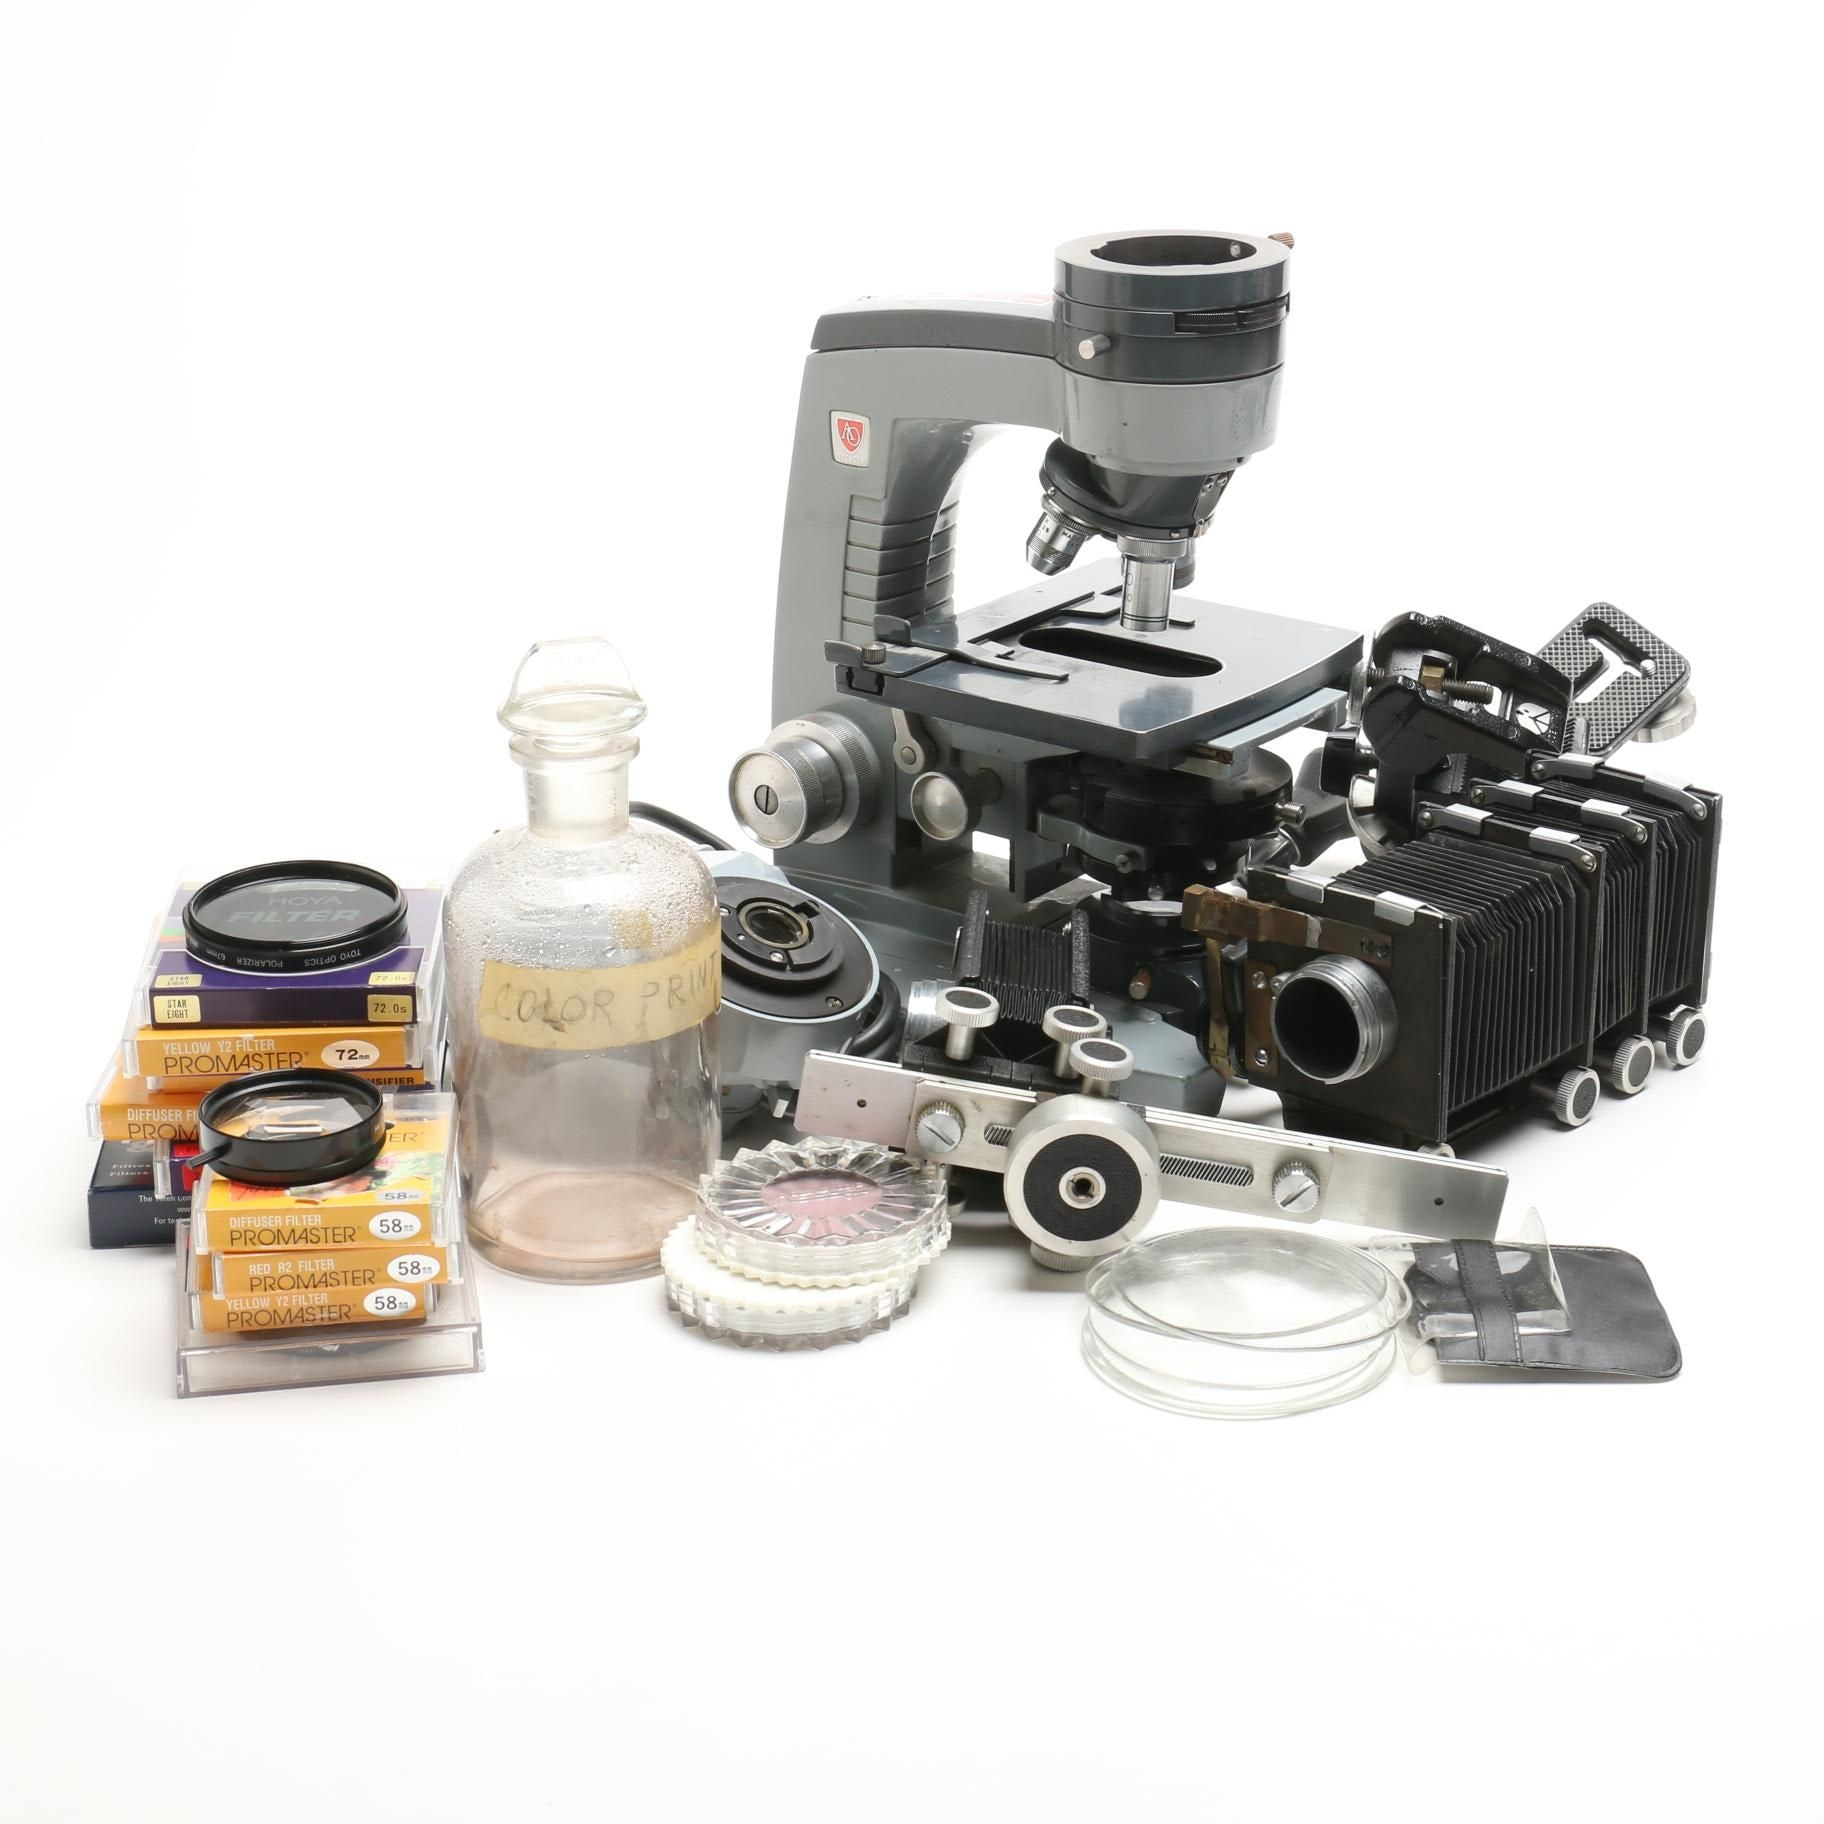 Collection of Photography Lab and Equipment and Spencer Microscope